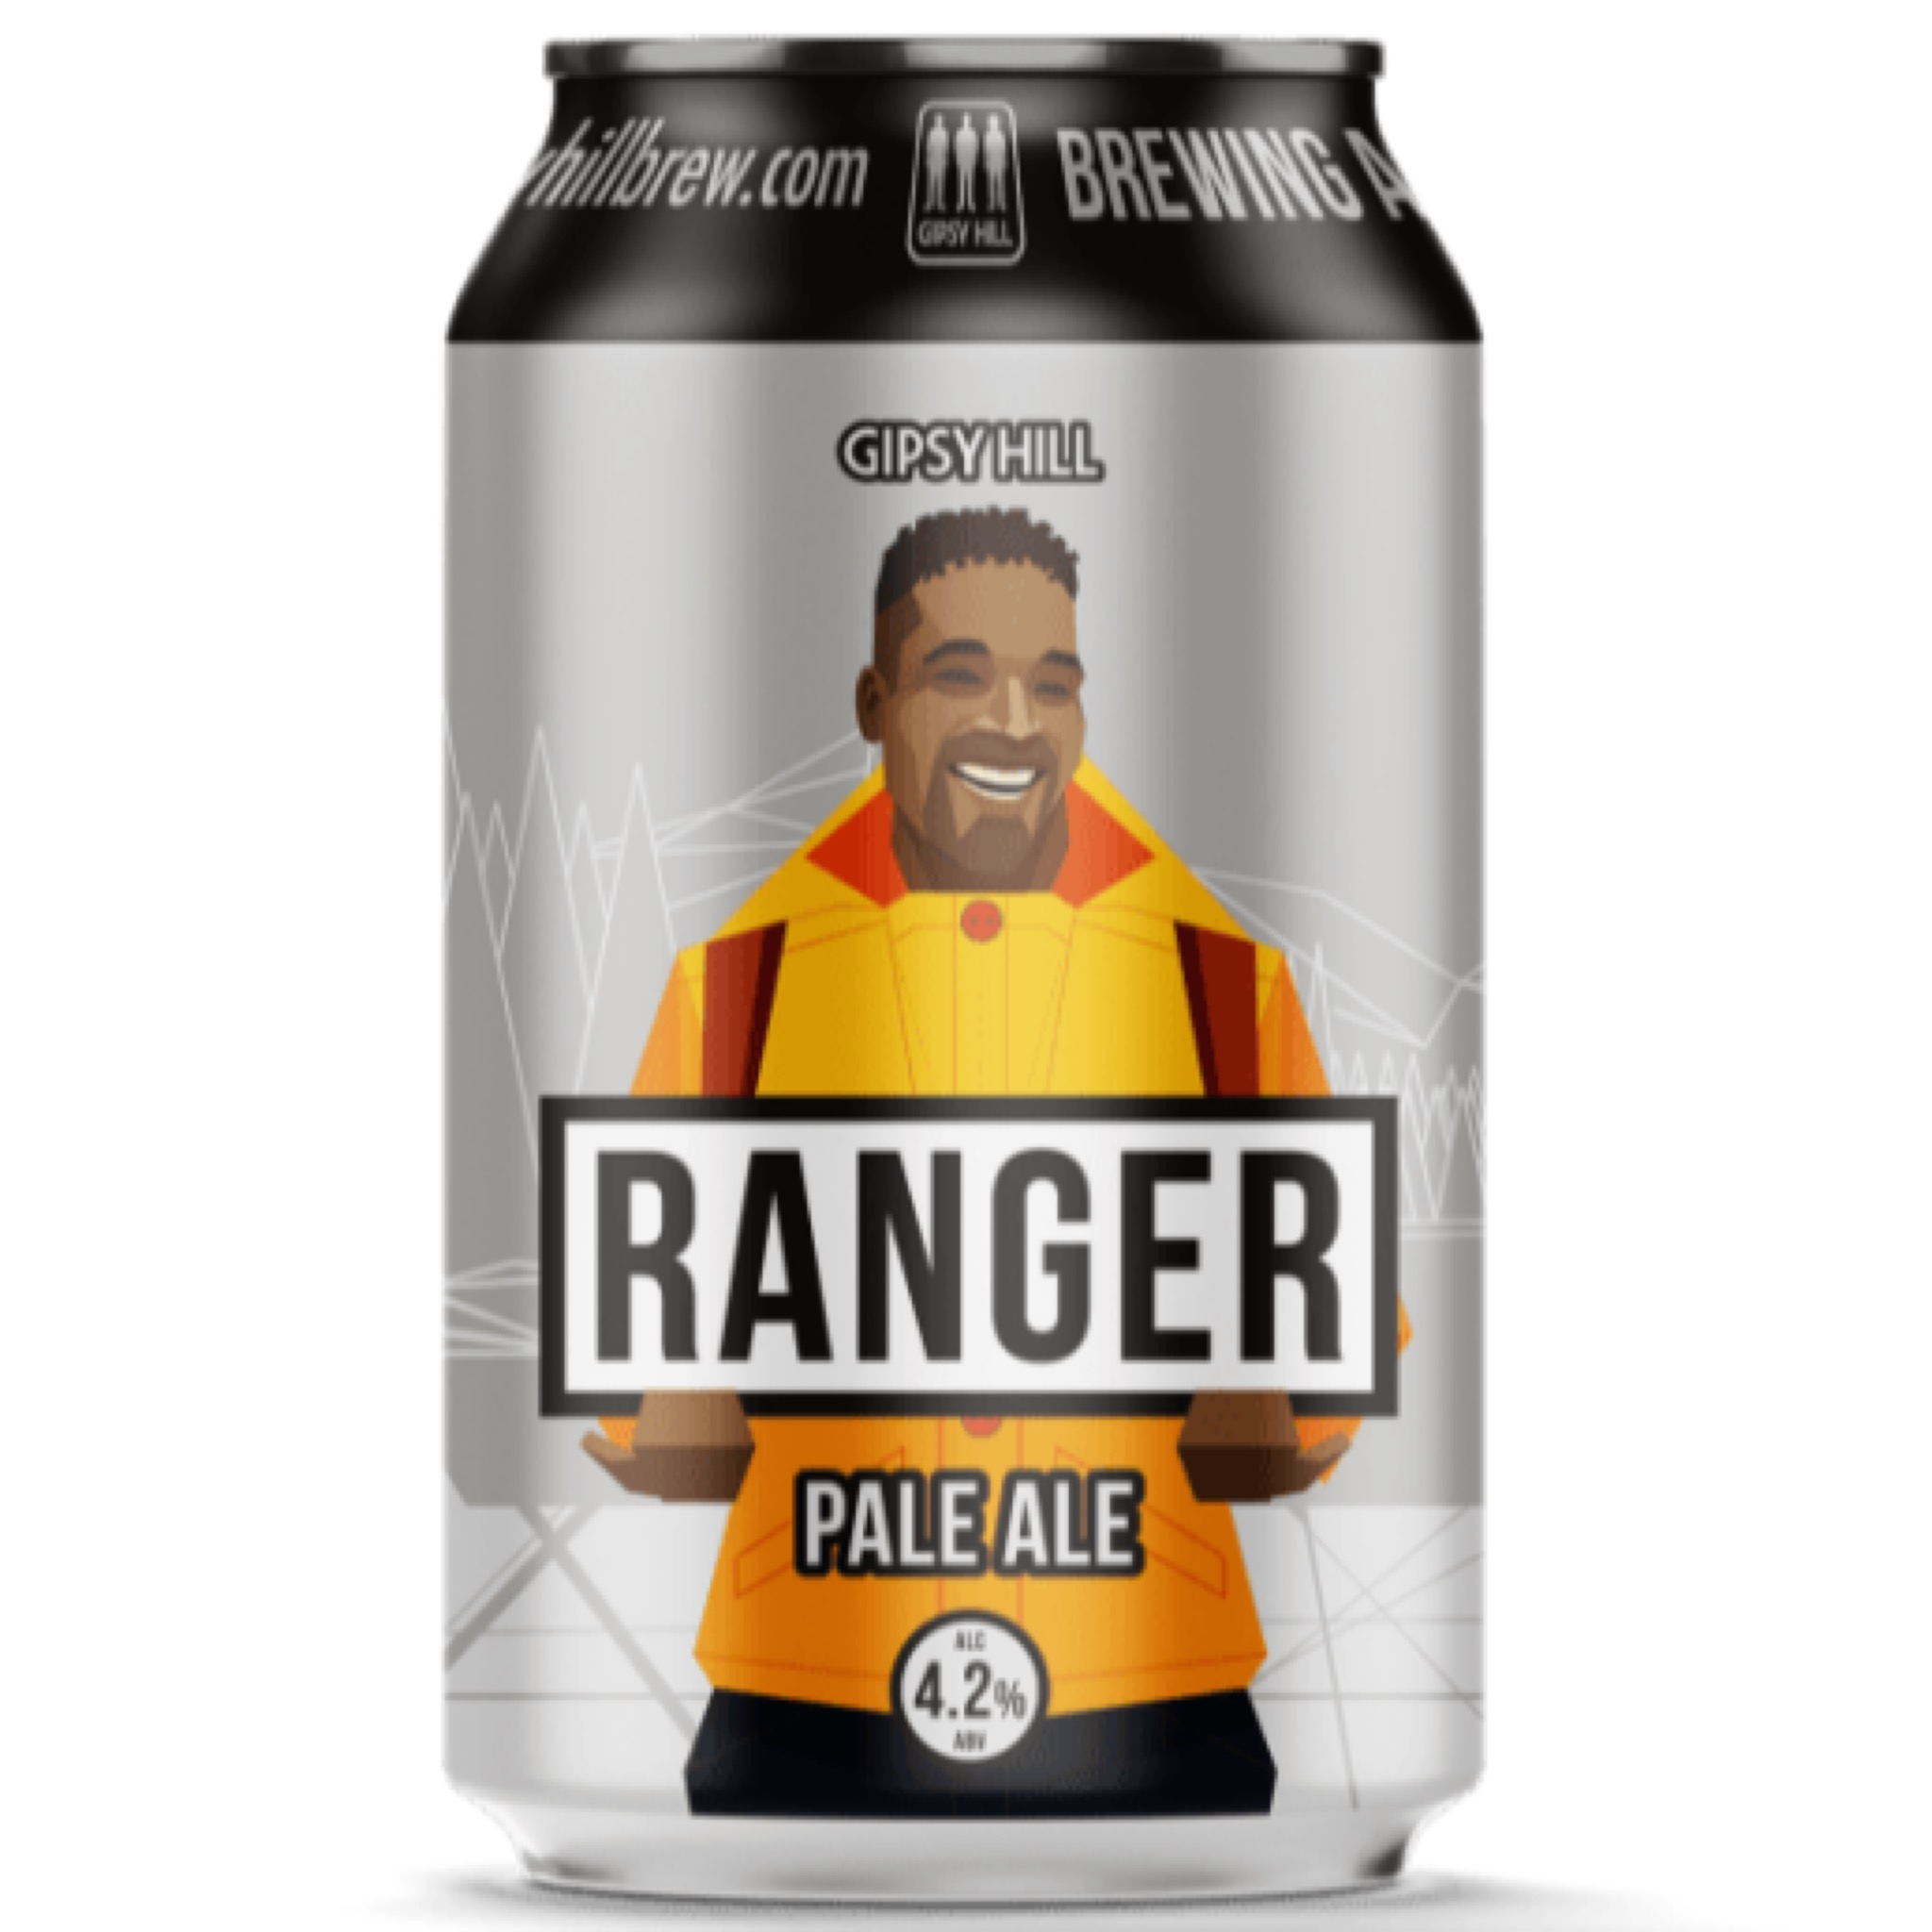 Ranger Pale Ale 4.2% 330ml Gipsy Hill Brewing